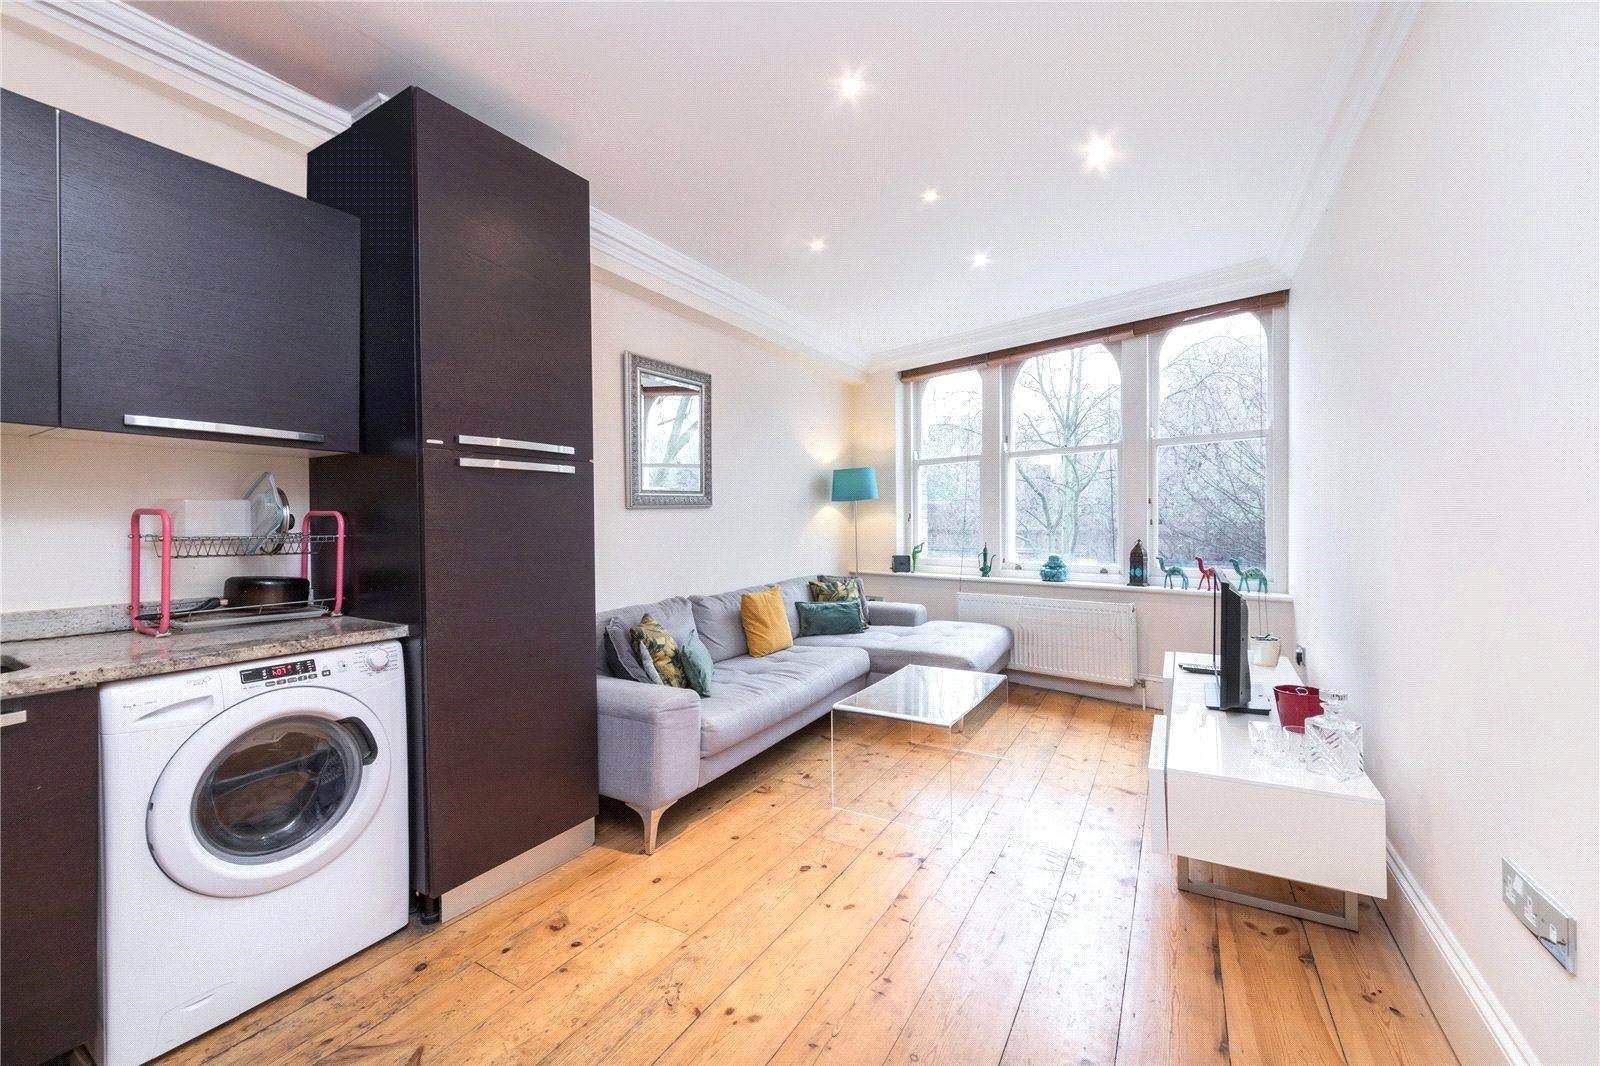 2 bed apartment to rent in Arsenal, N5 1LU 3